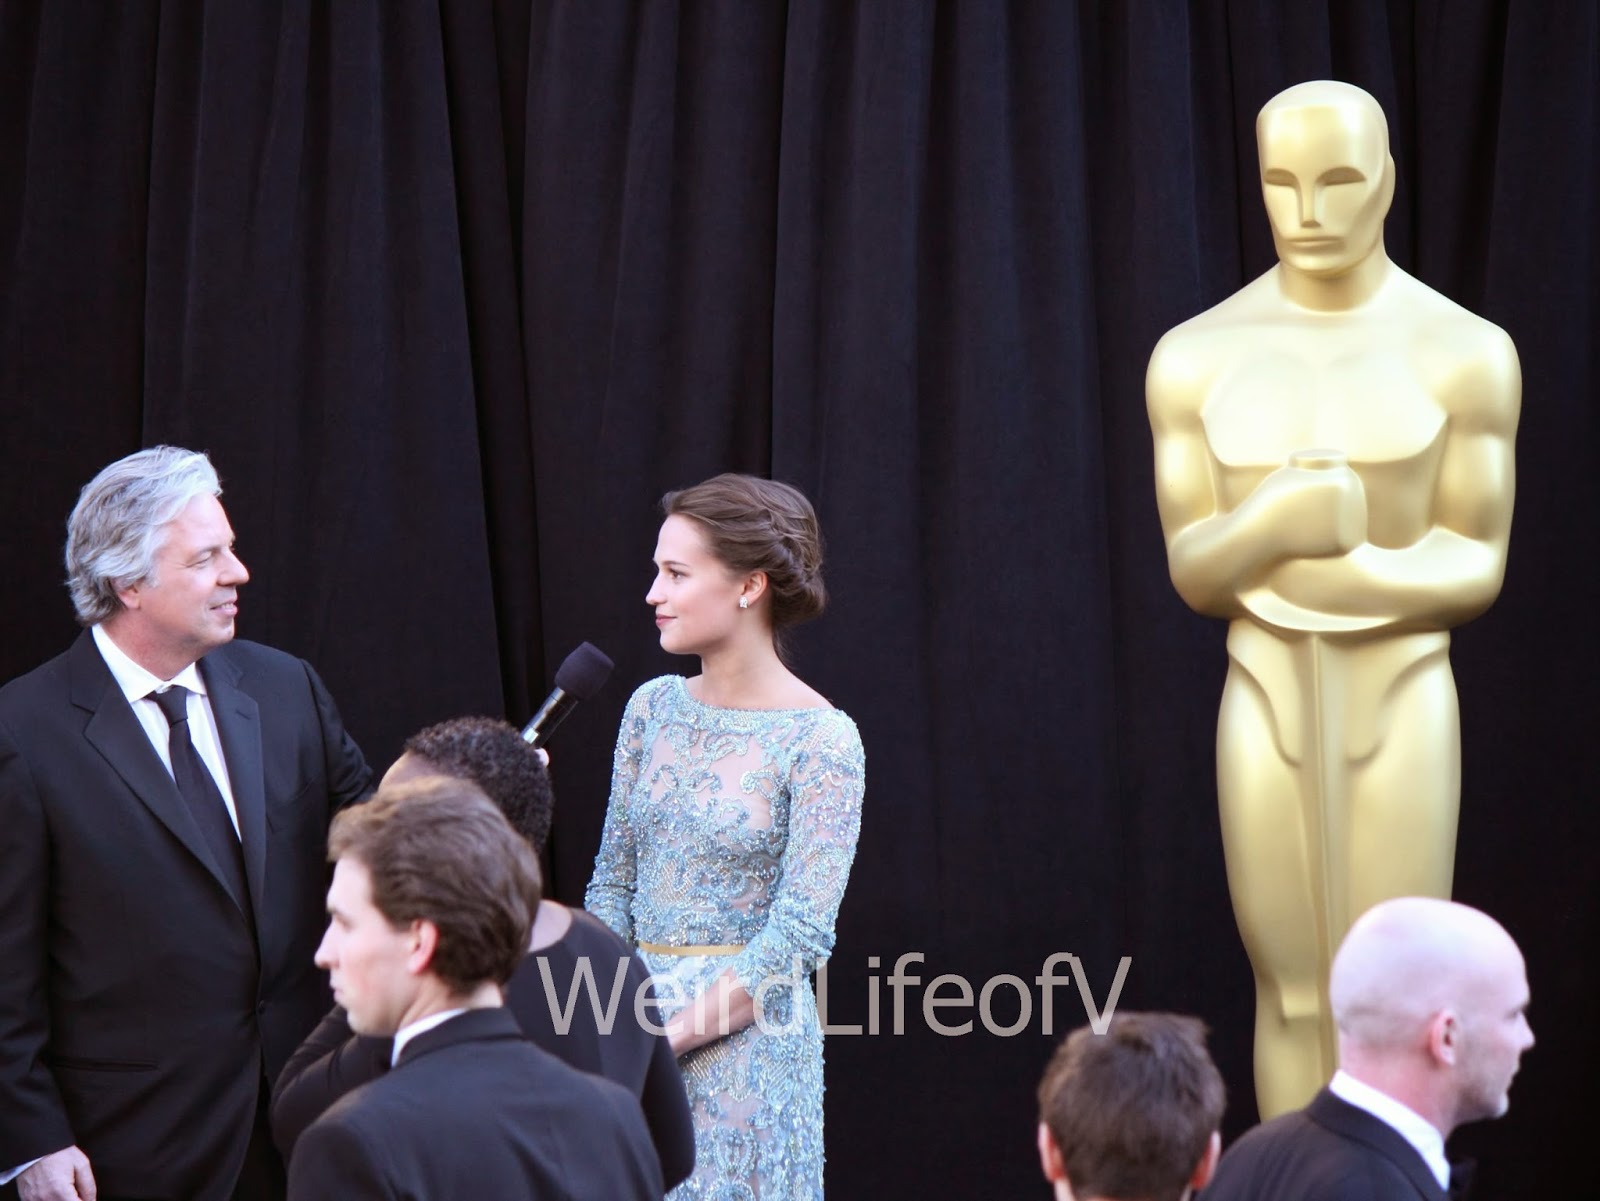 Alicia Vikander being interviewed by Chris Connelly at the 2013 Academy Awards